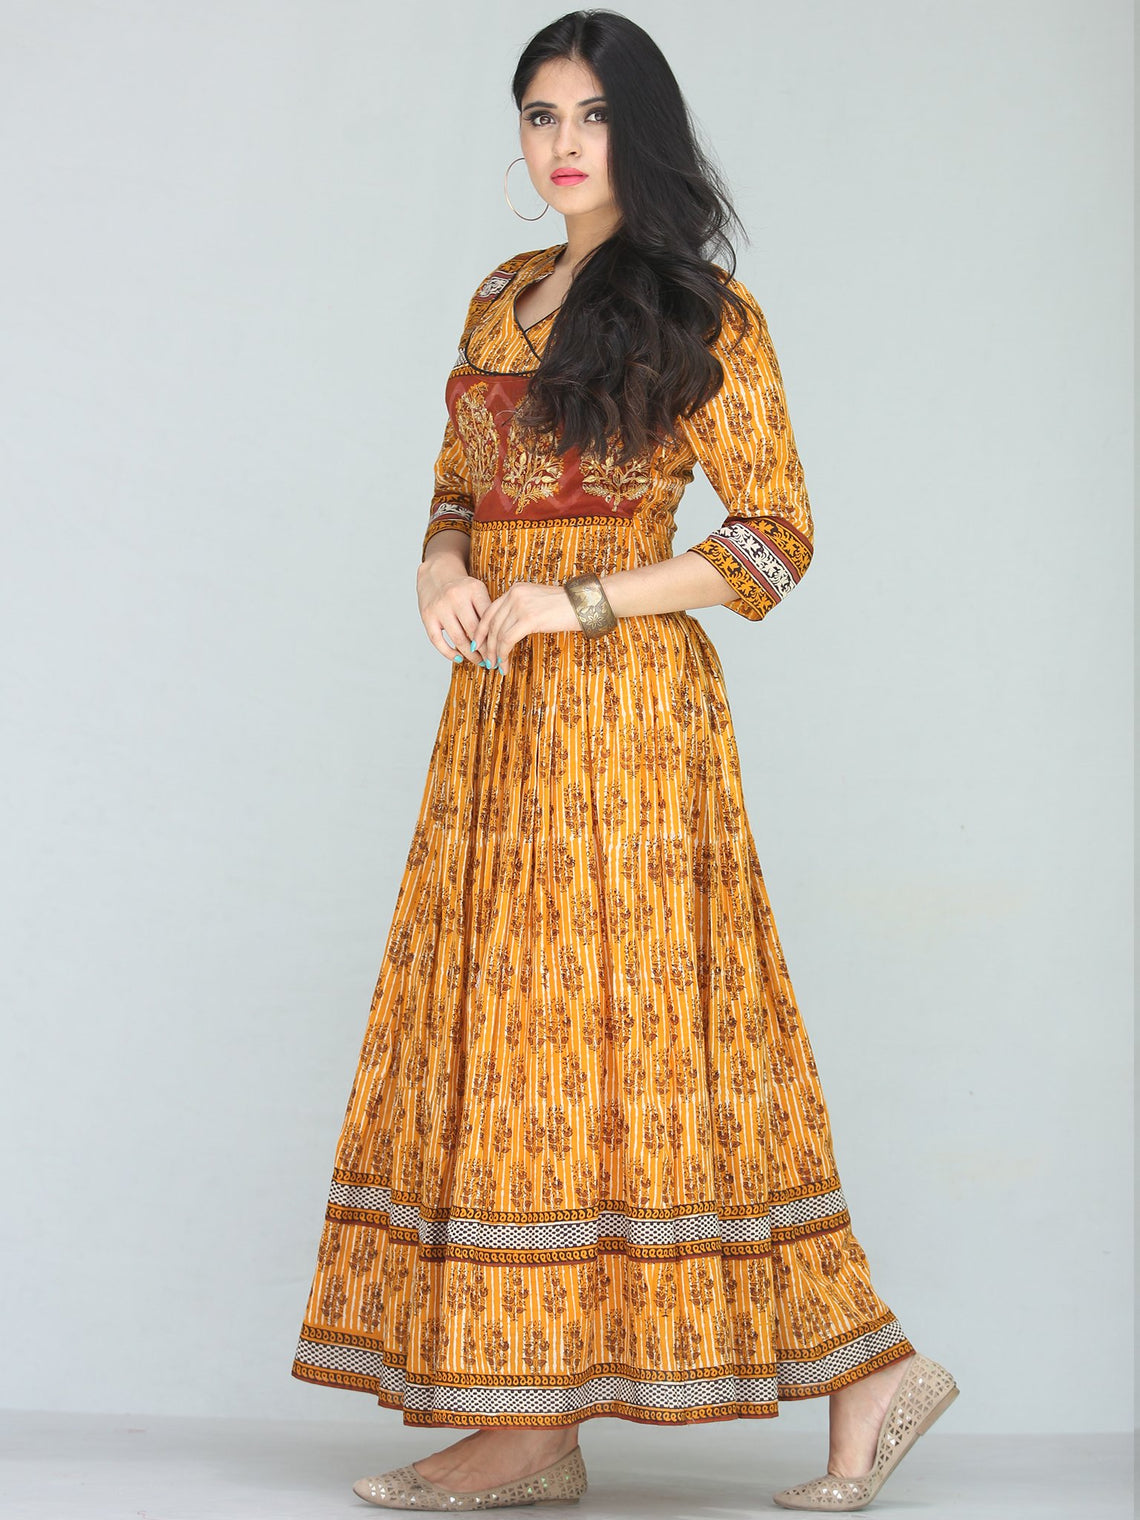 Naaz Sehar - Hand Block Printed Long Cotton Dress With Embroidery - DS112F001